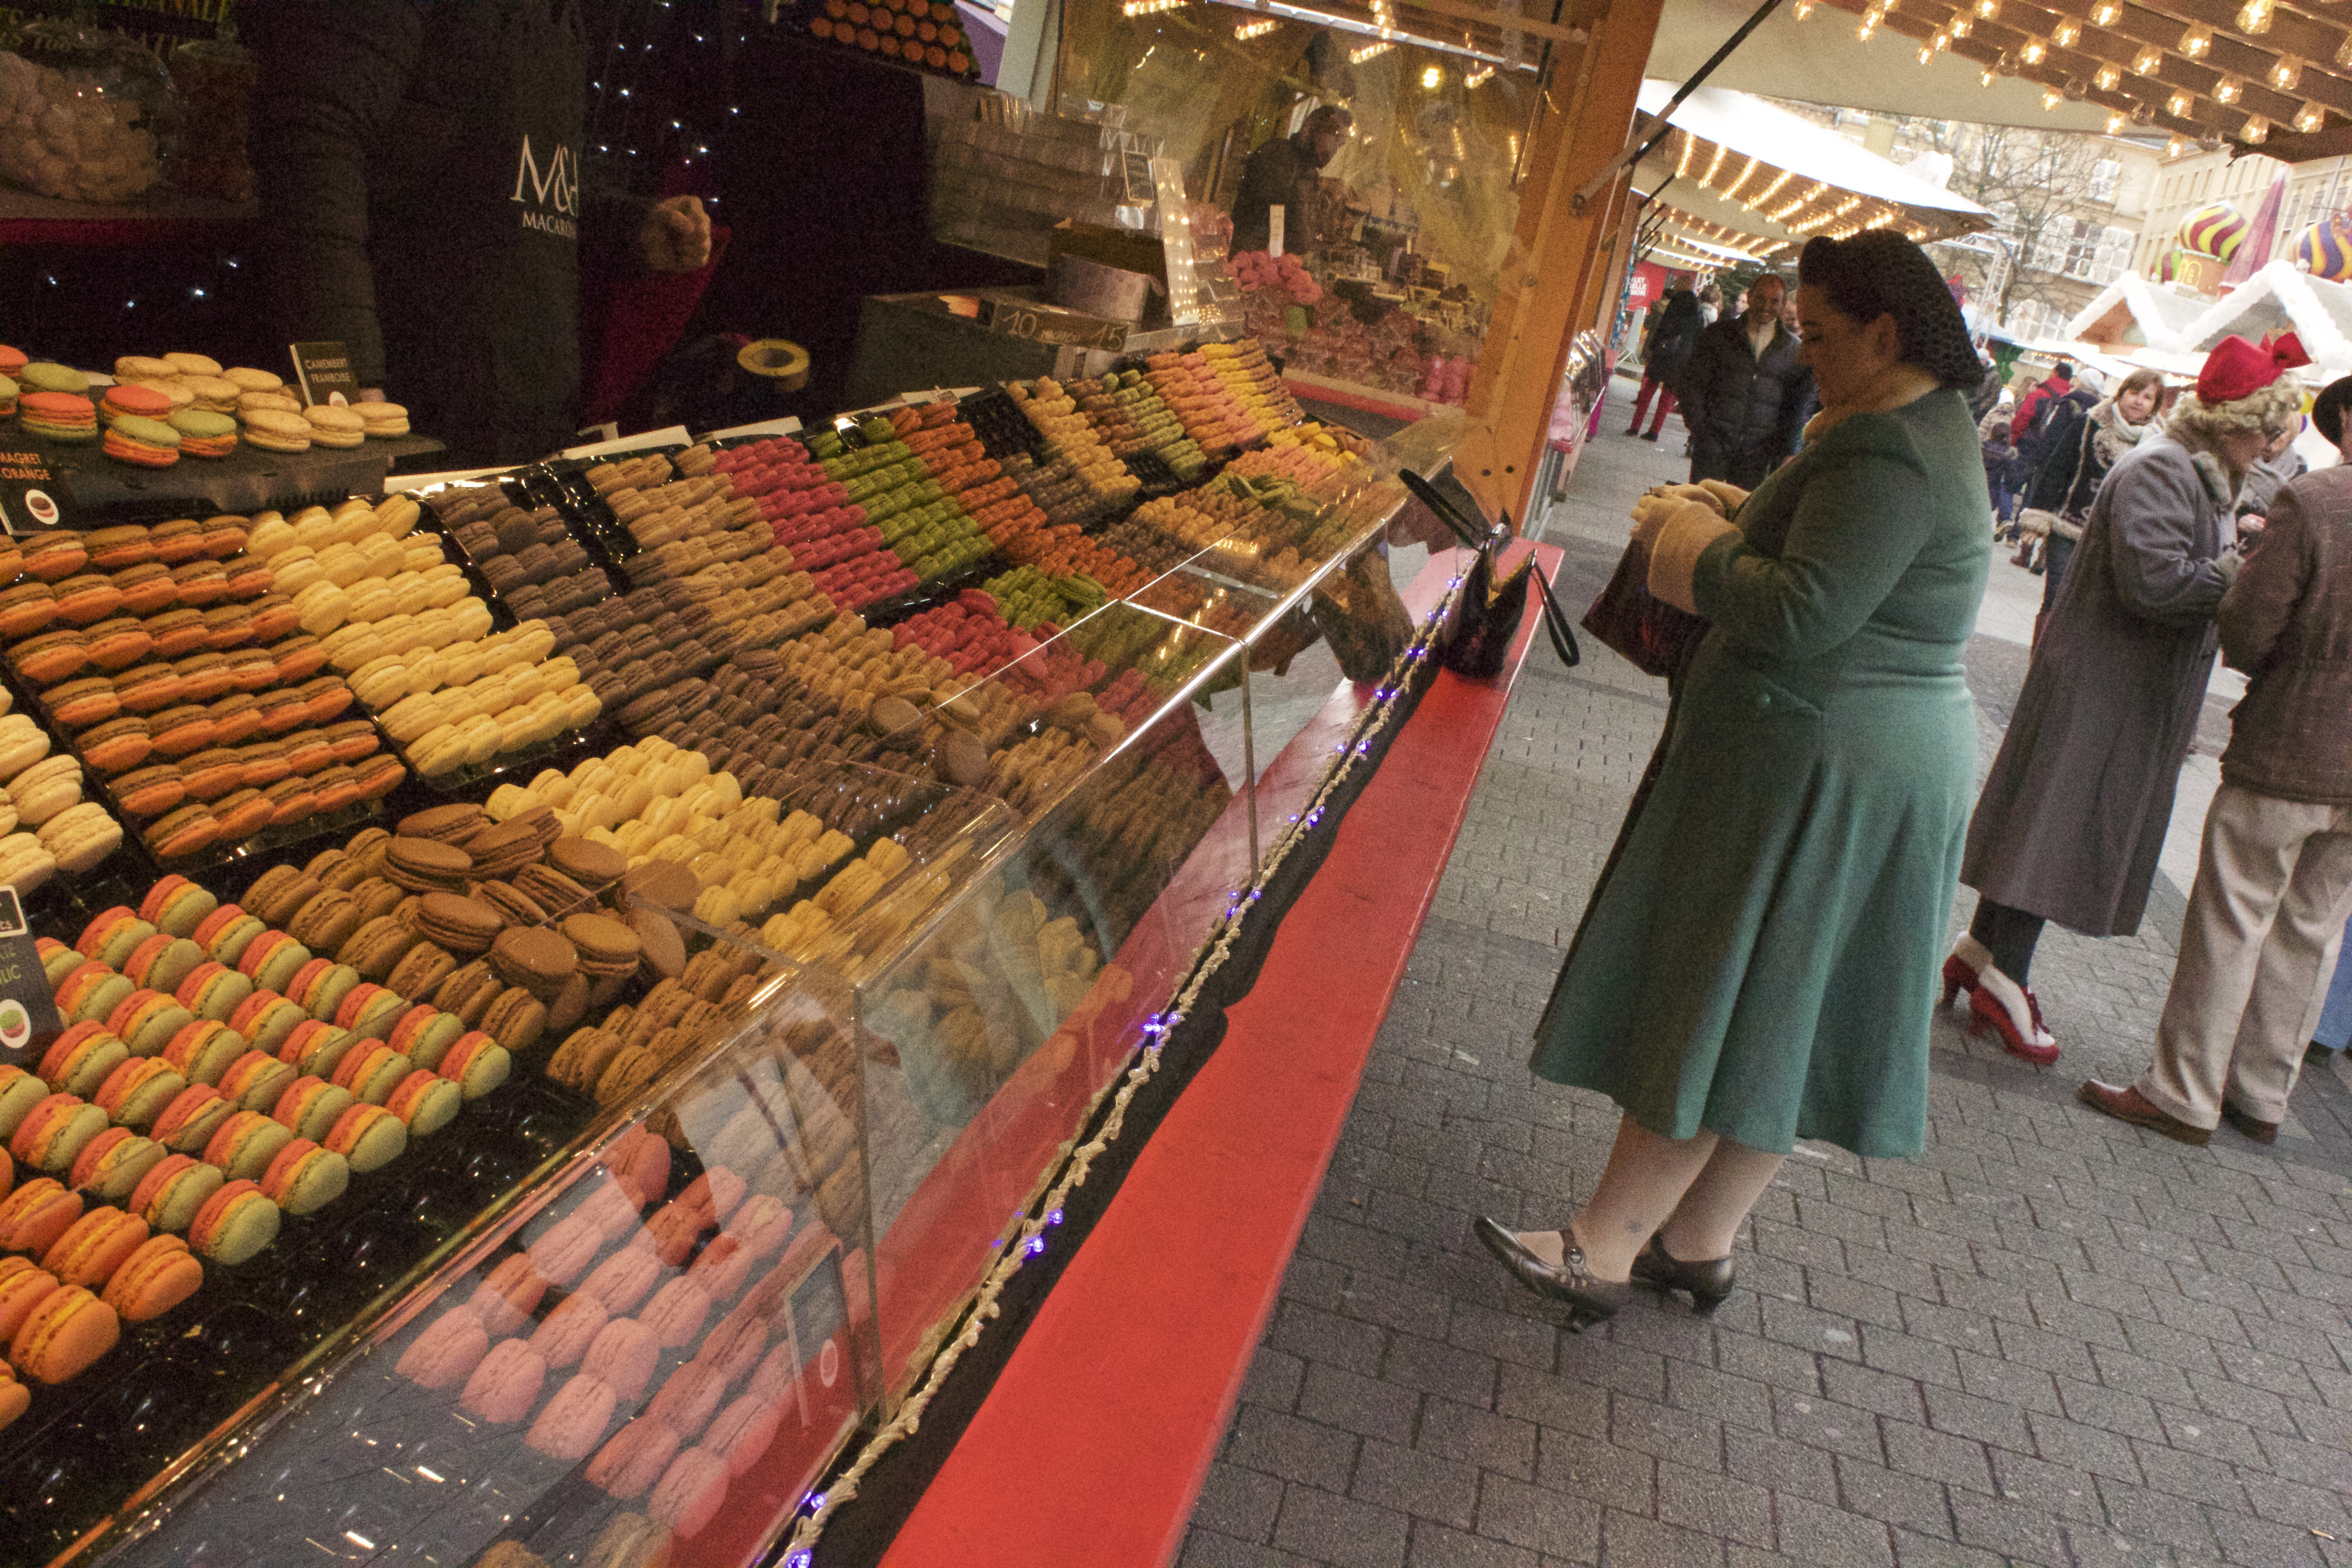 I would have bought the entire stall of macarons if no one was looking.